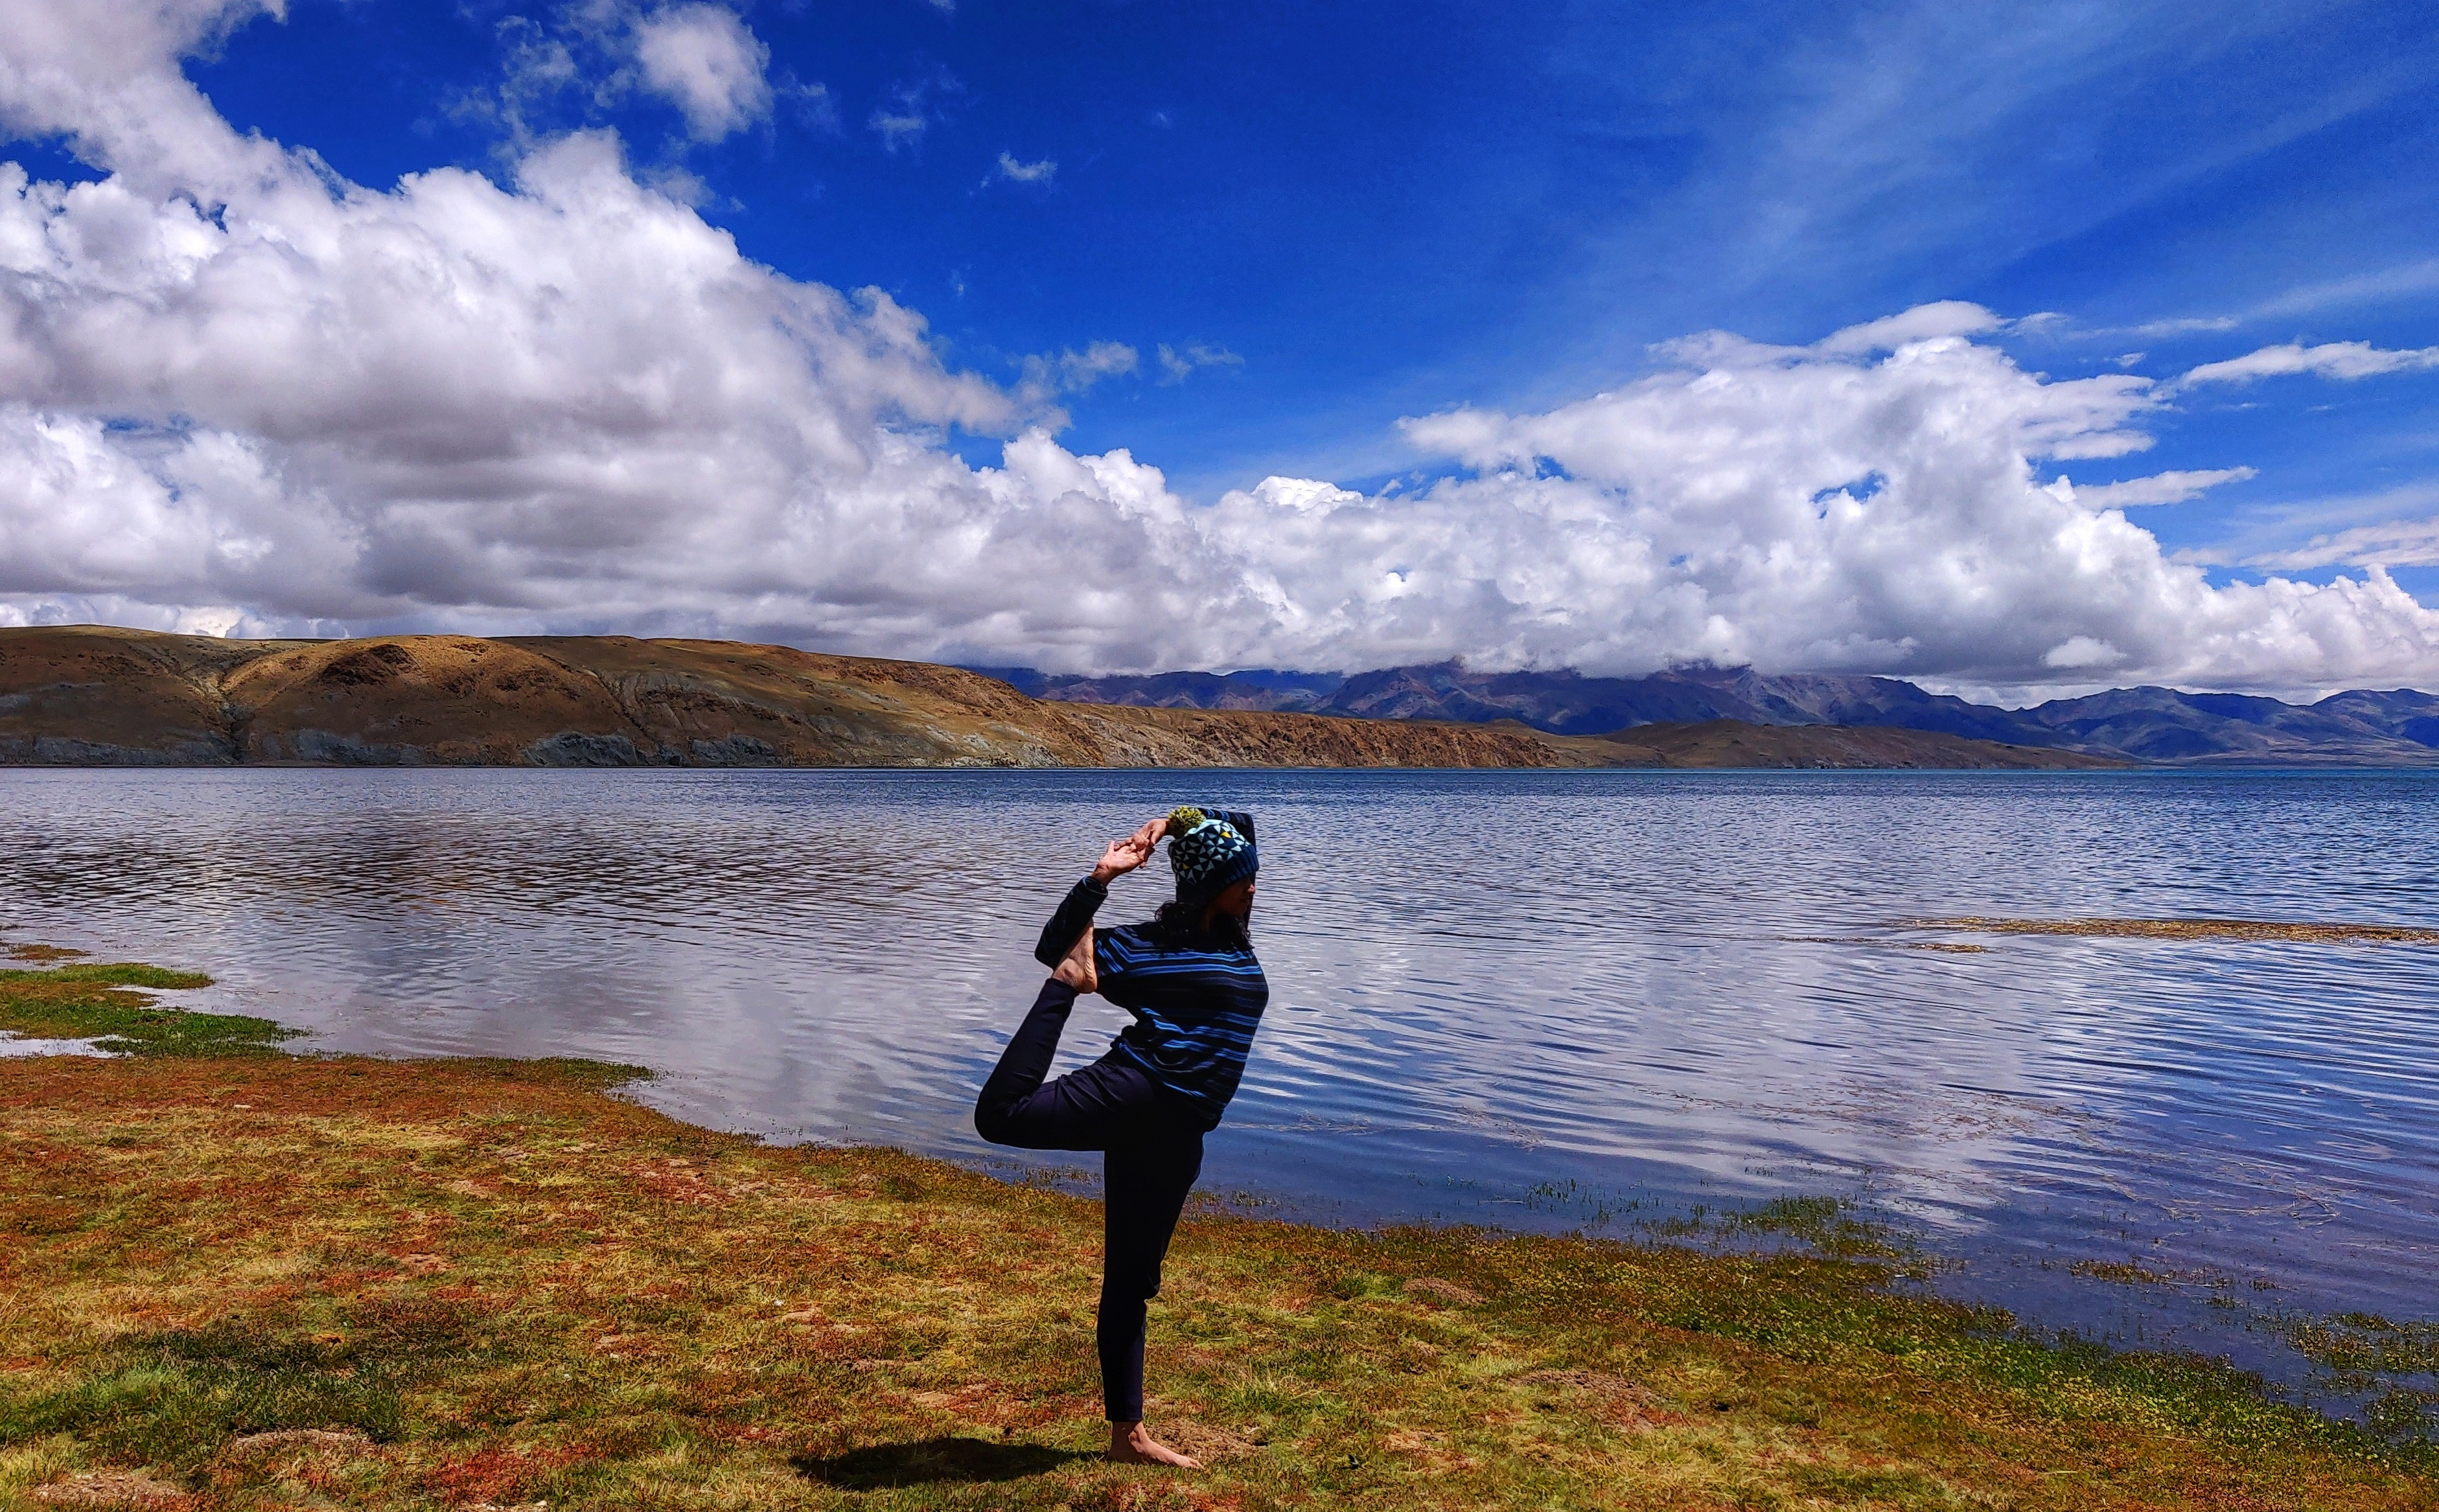 Mansarovar Lake is considered to be a holy lake and its water is said to clean all sins